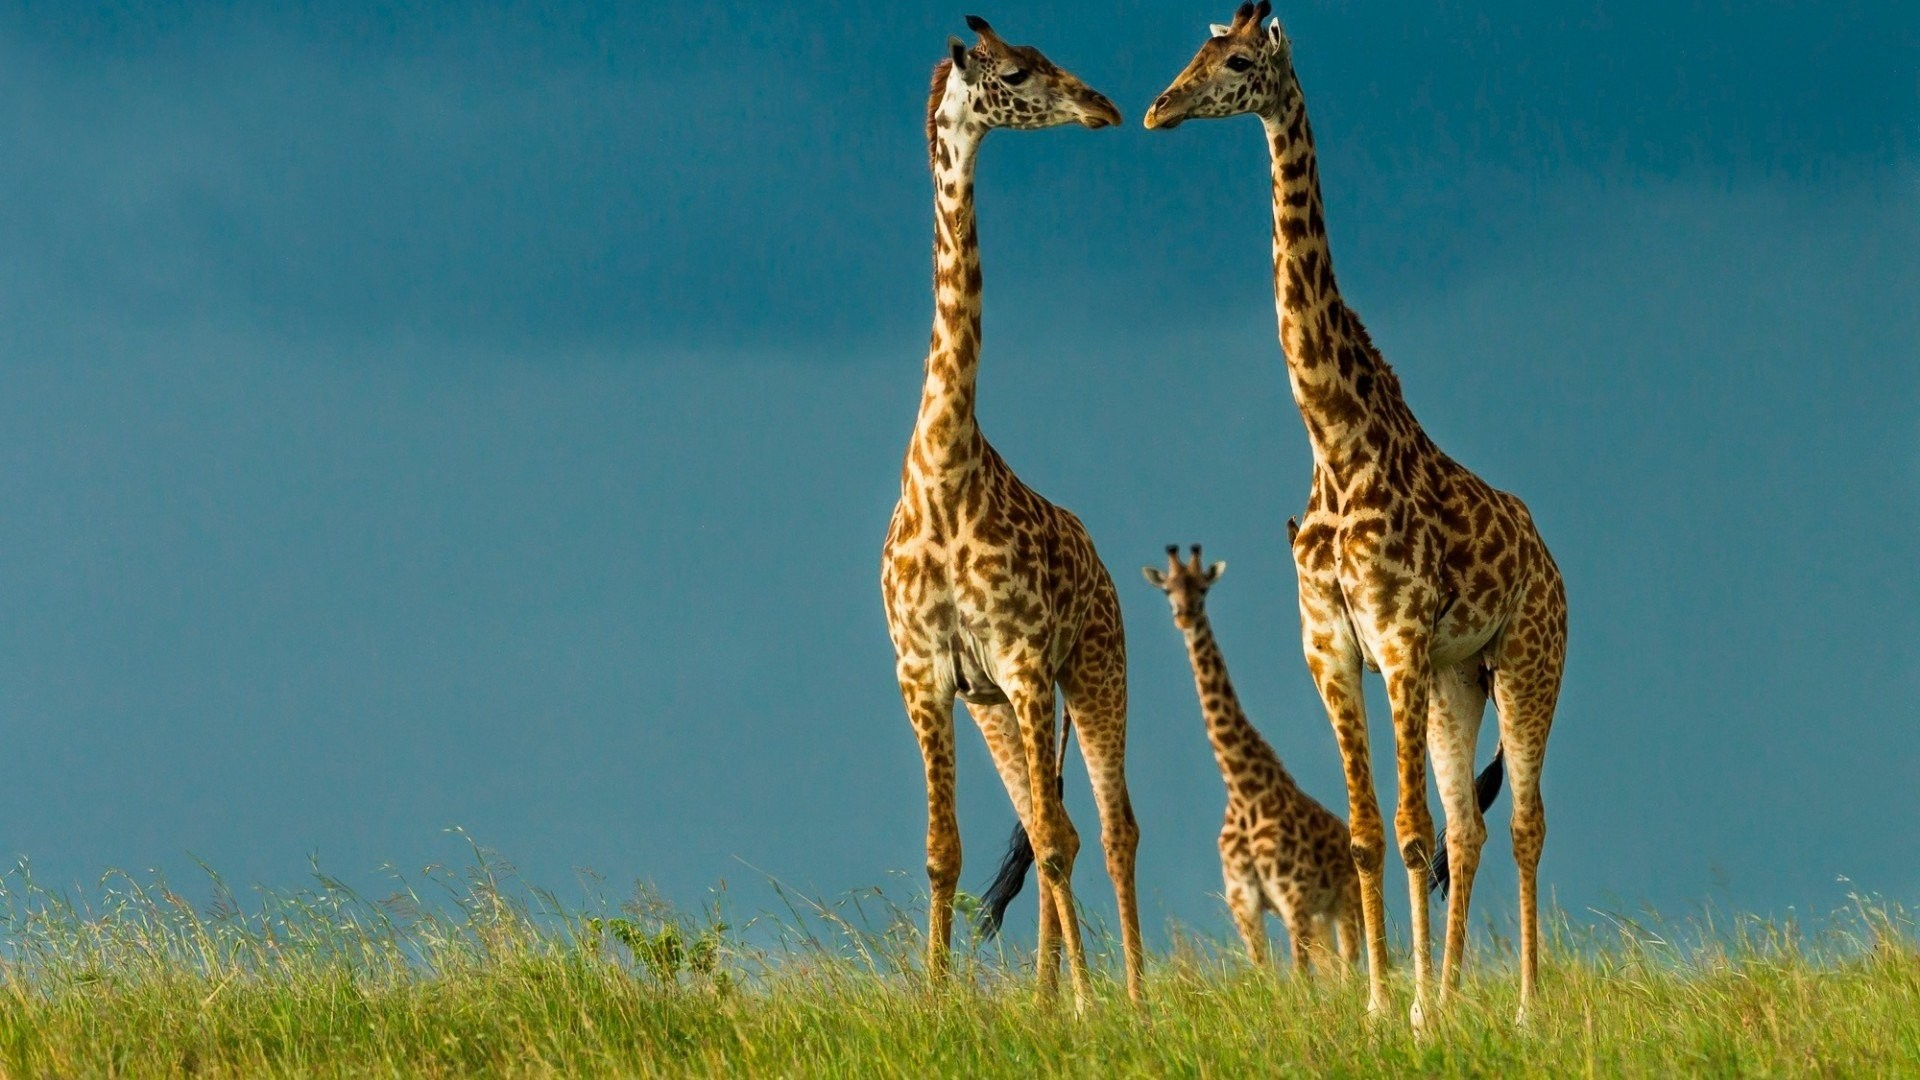 1920x1080 Beauty cute amazing animal Animal Giraffe Family wallpaper |  |  893744 | WallpaperUP